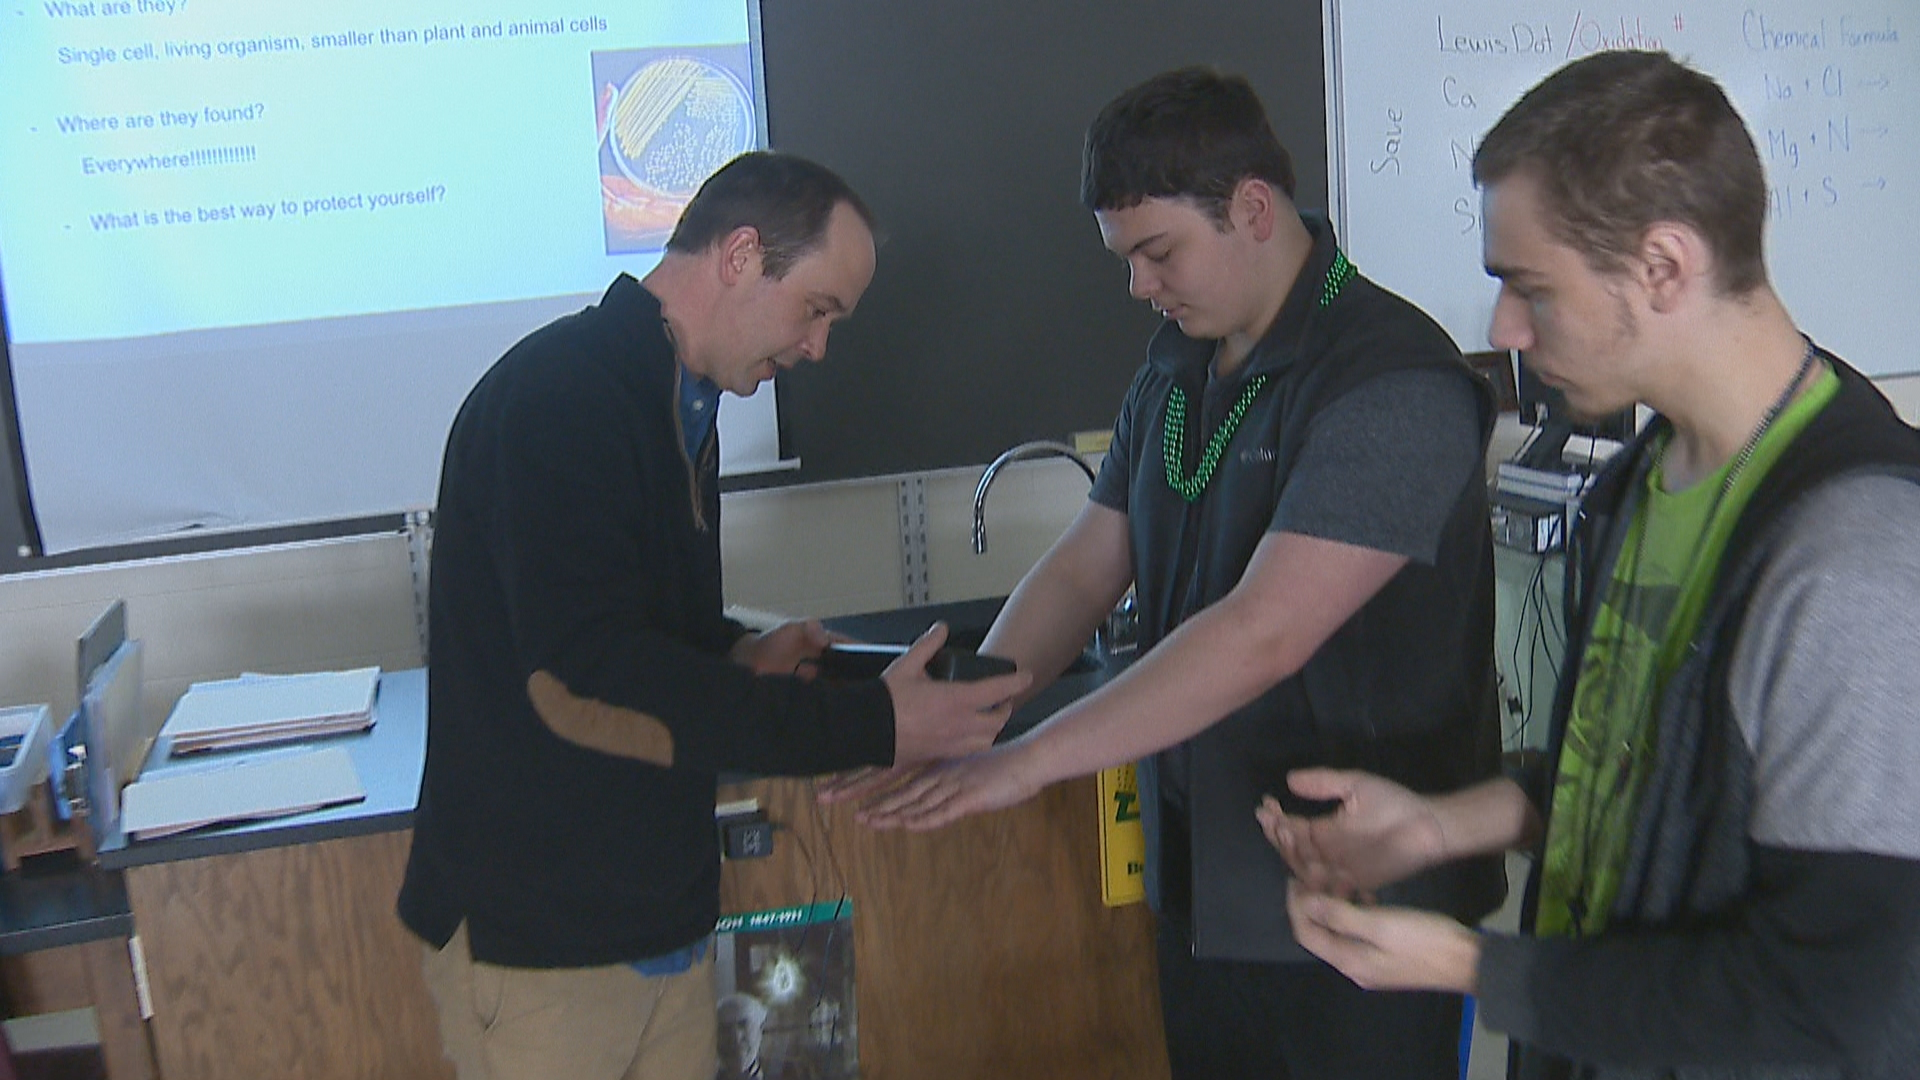 Stephen Engels, a biology teacher at Green Bay Southwest High School does a demonstration with students during class. (WLUK)